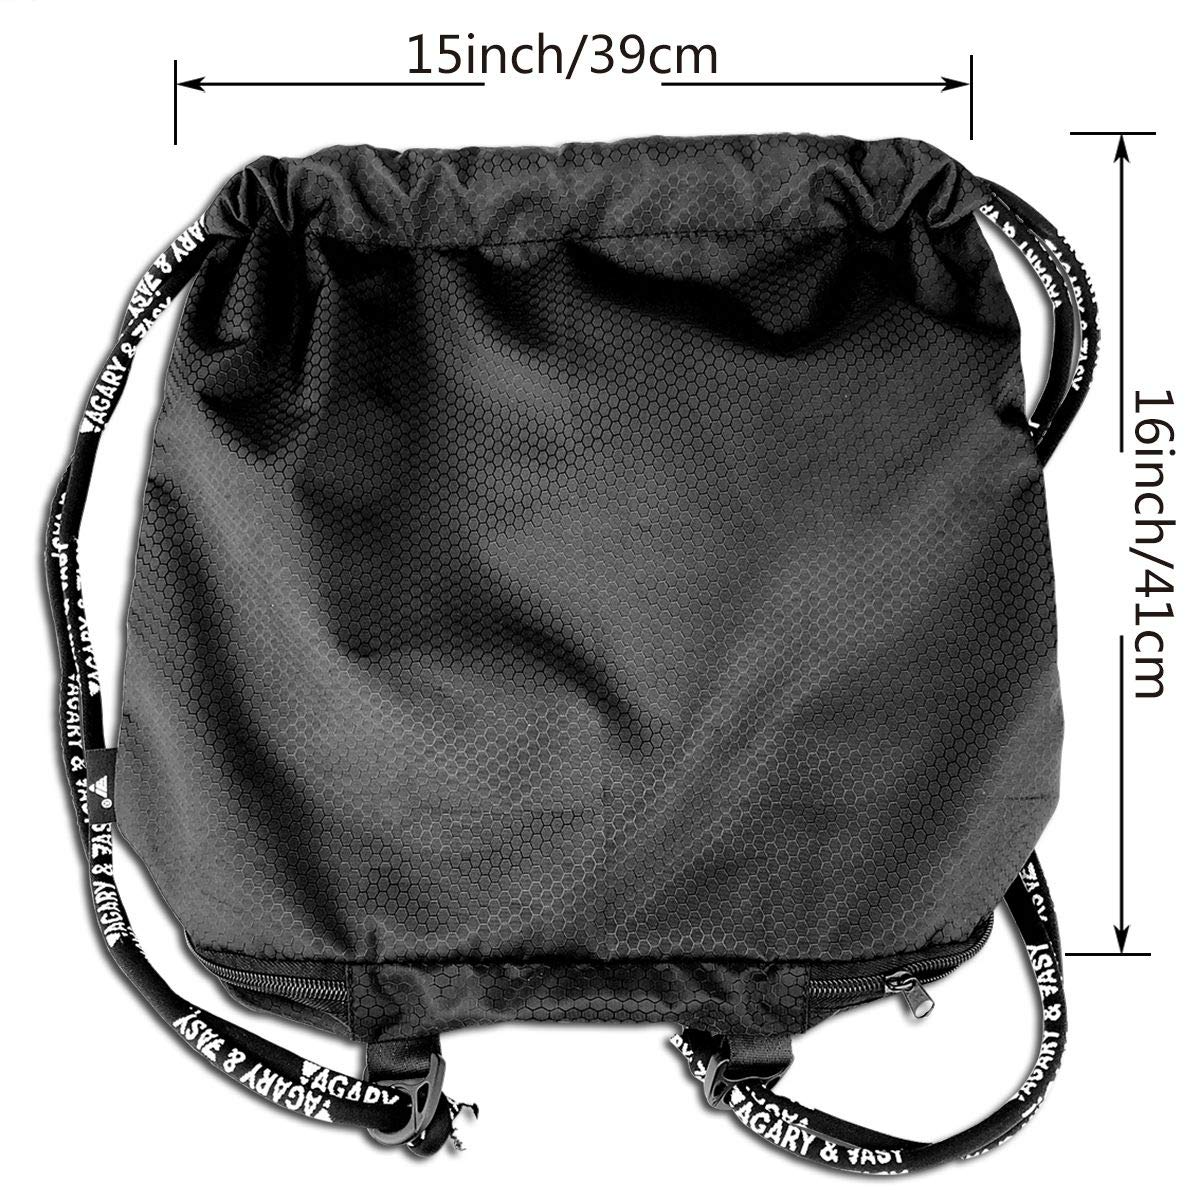 Geometry Royal Drawstring Backpack Sports Athletic Gym Cinch Sack String Storage Bags for Hiking Travel Beach